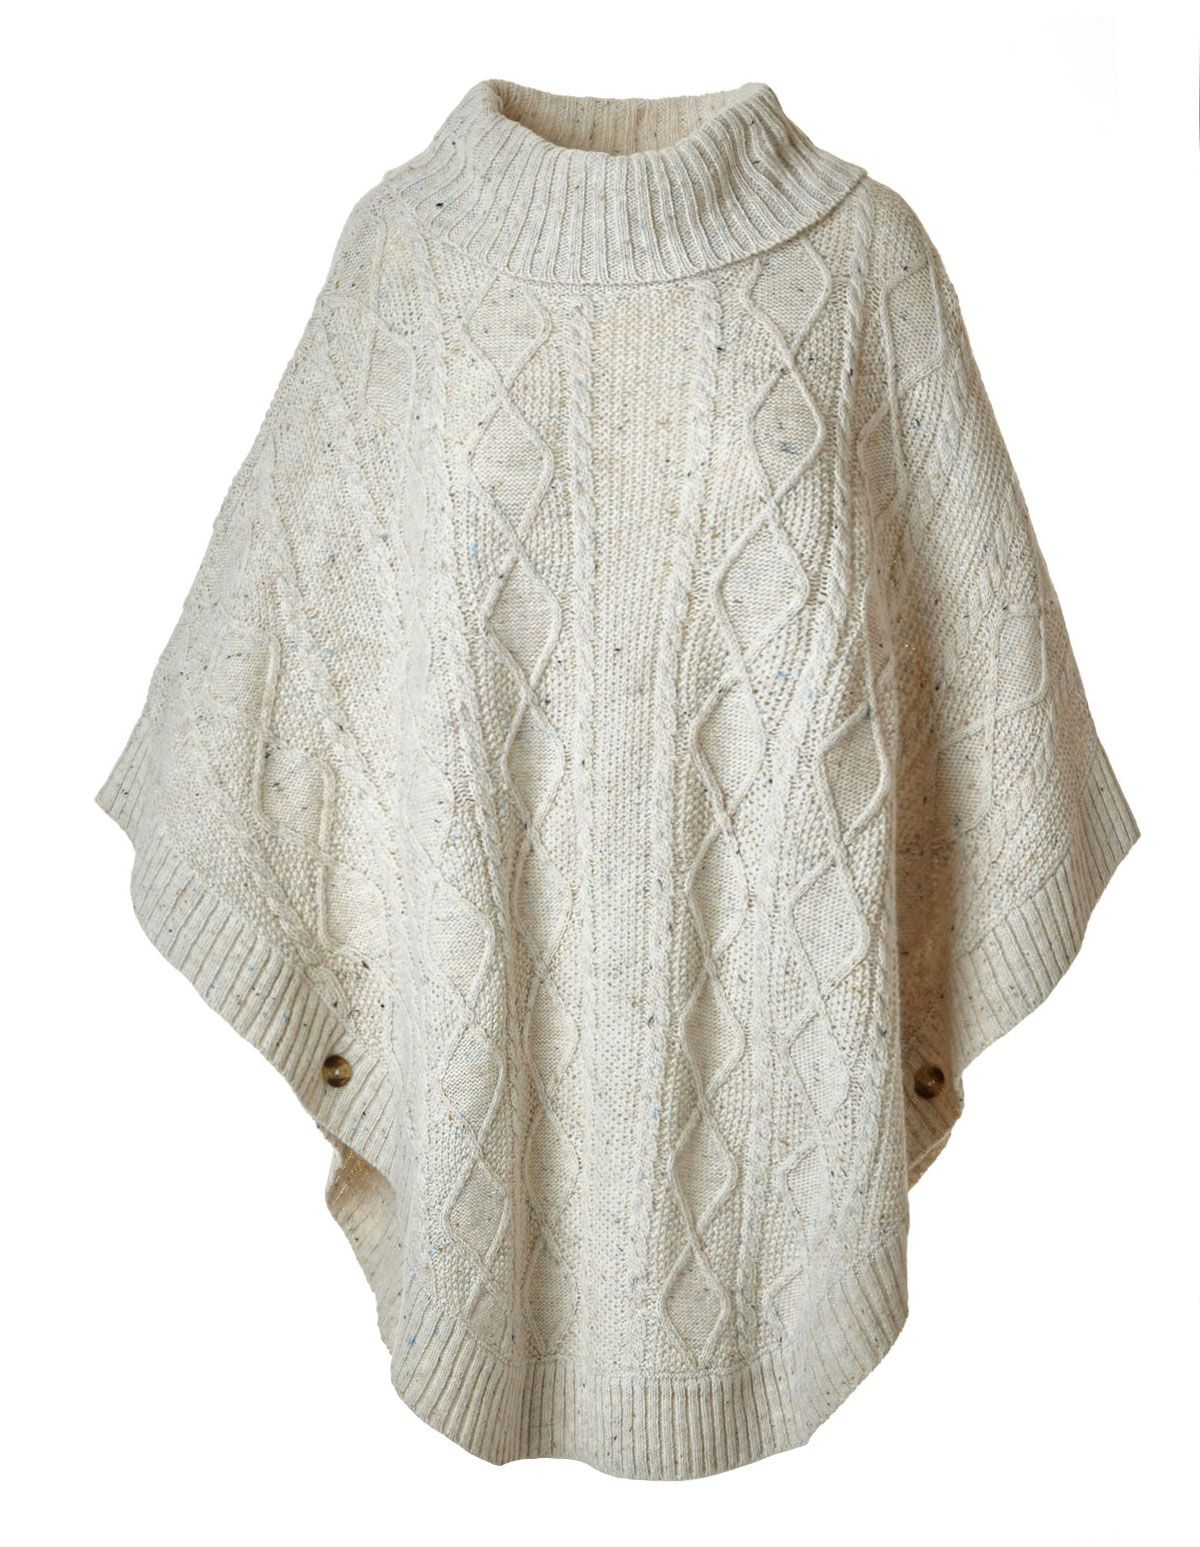 02461b5eb Cleo Latte Cowl Neck Poncho Sweater  29.99  69.90